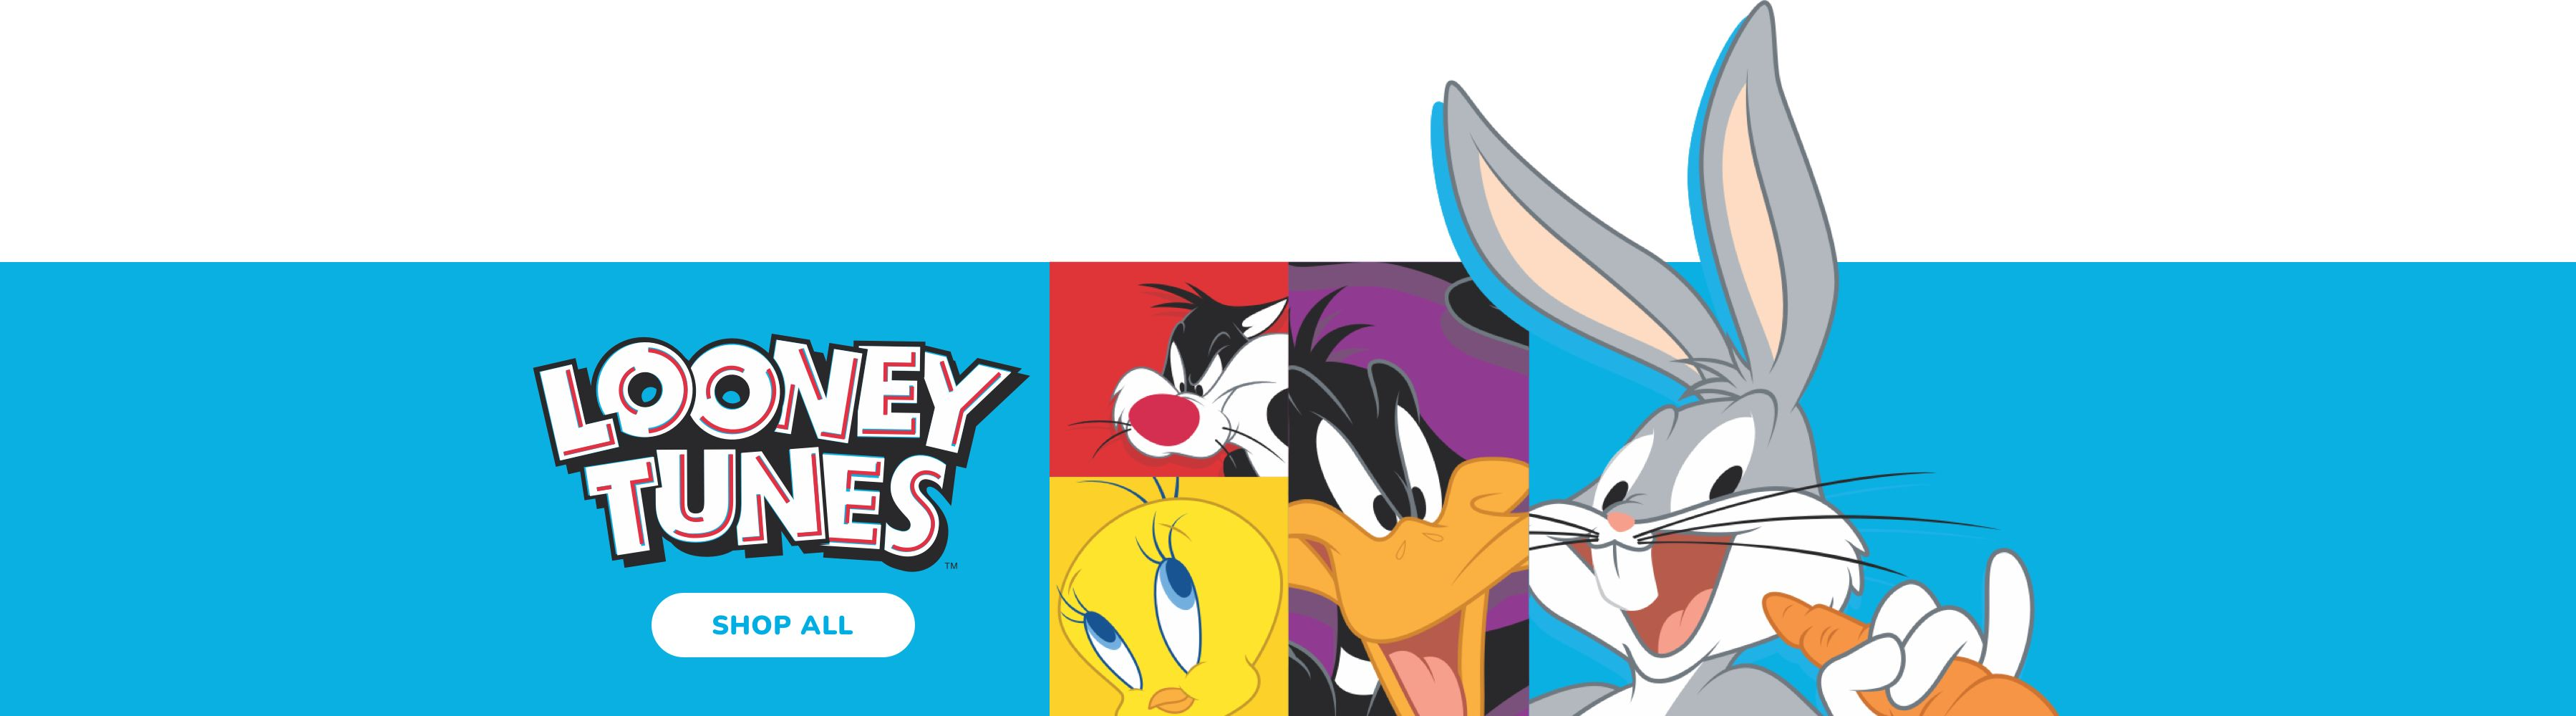 Shop All Looney Tunes